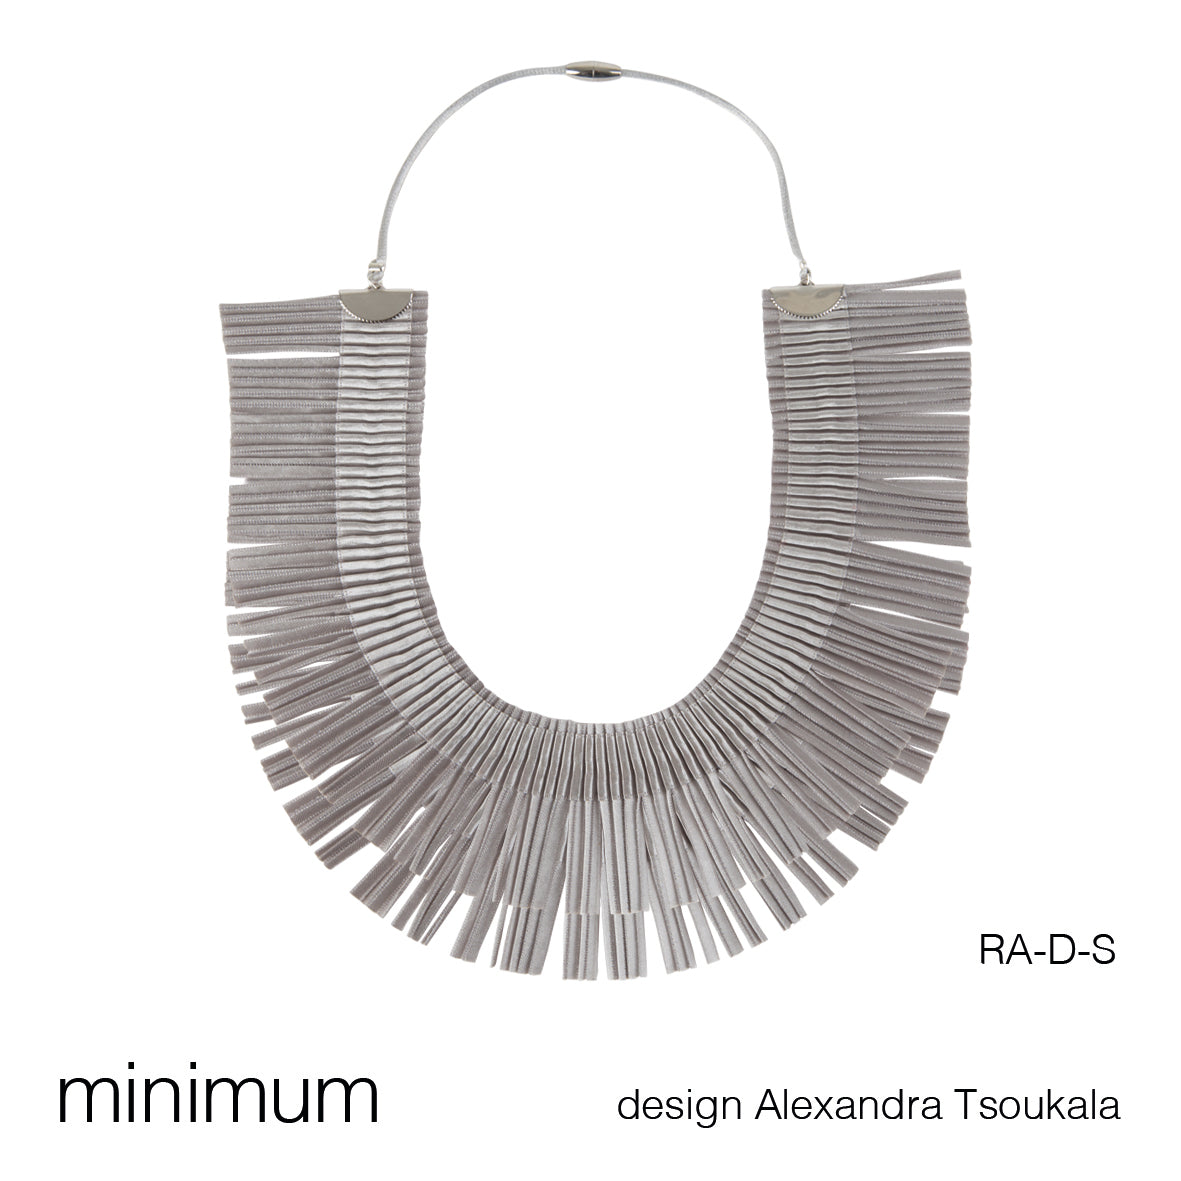 RA DOUBLE CHOKER/NECKLACE by ALEXANDRA TSOUKALA